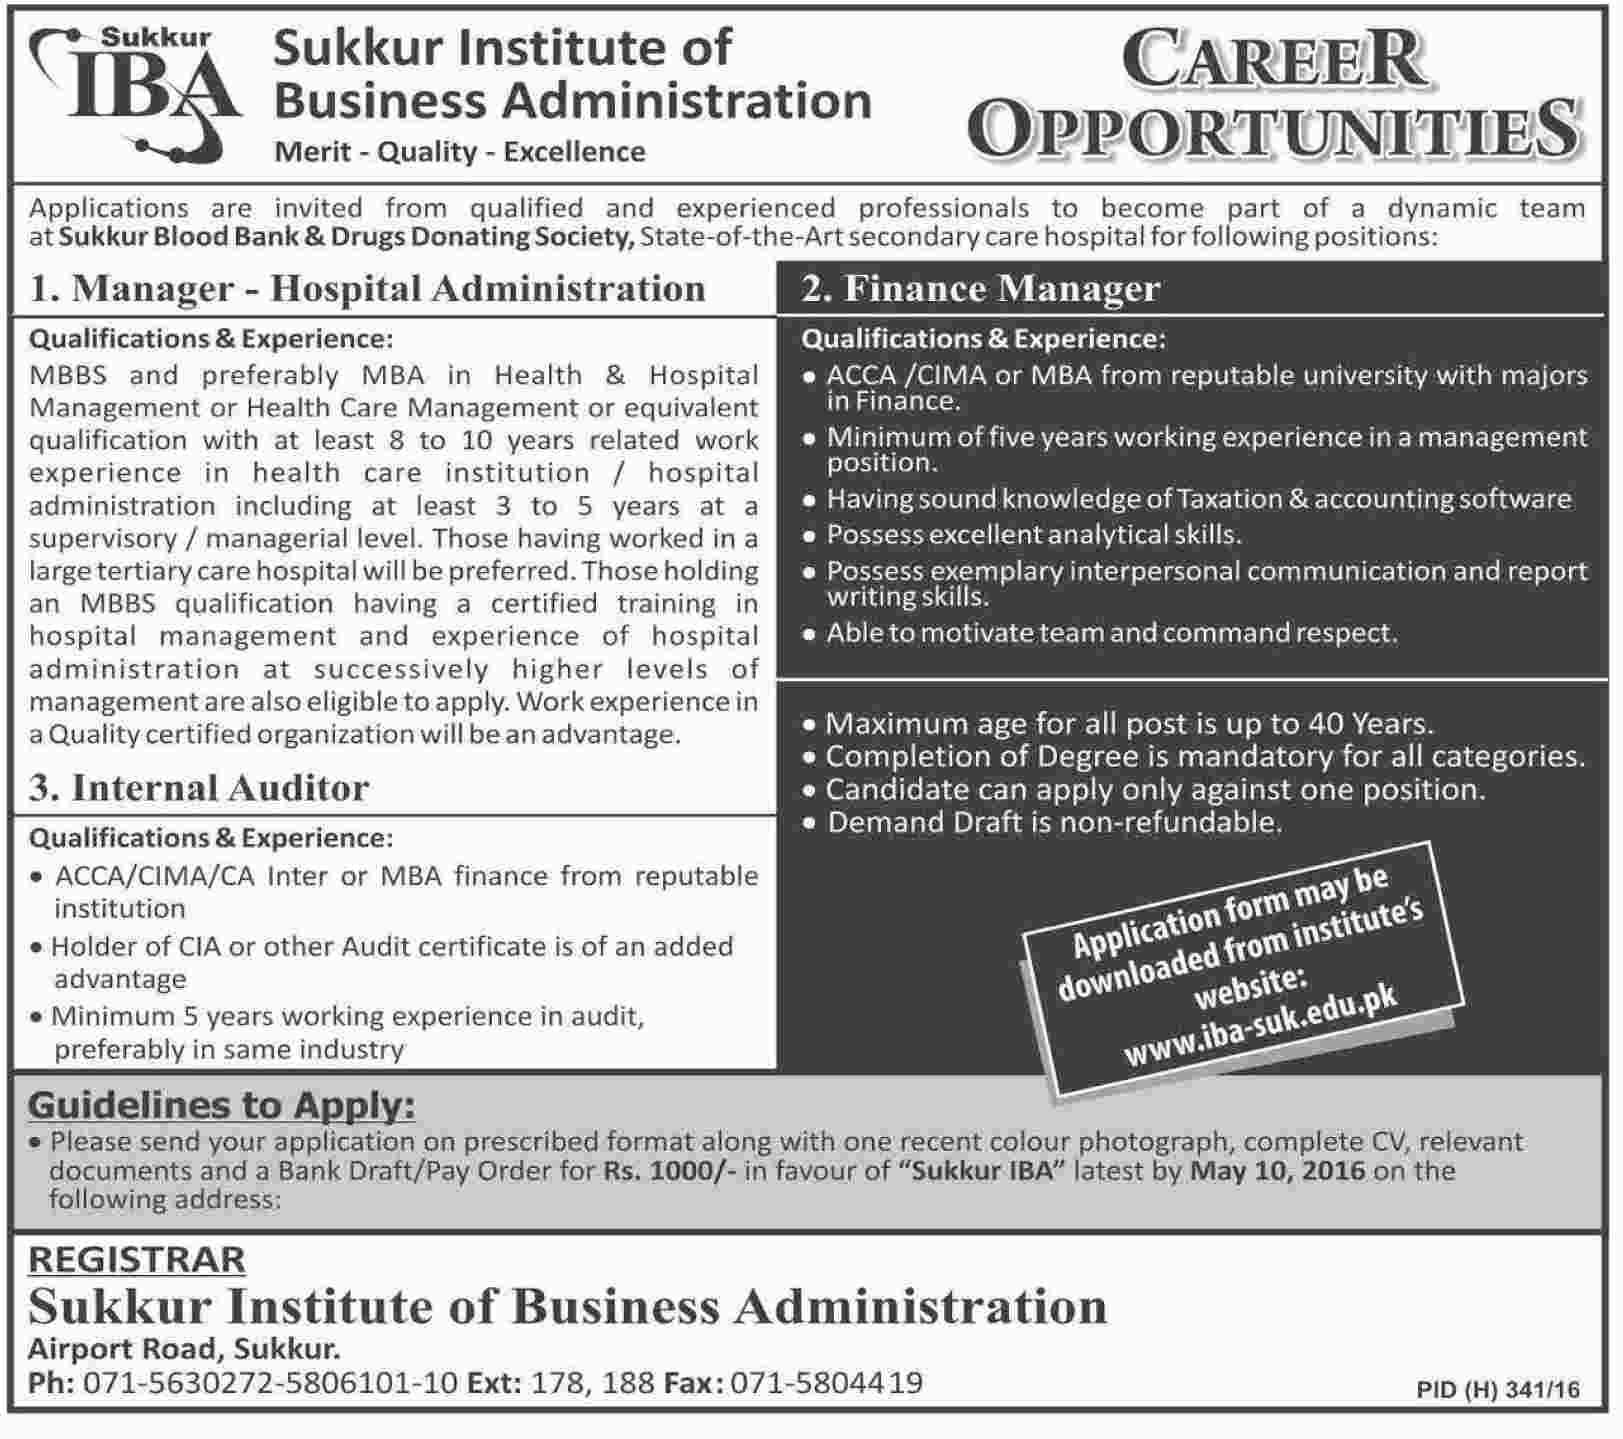 Sukkar Institute of Bussiness Administration Jobs 2016